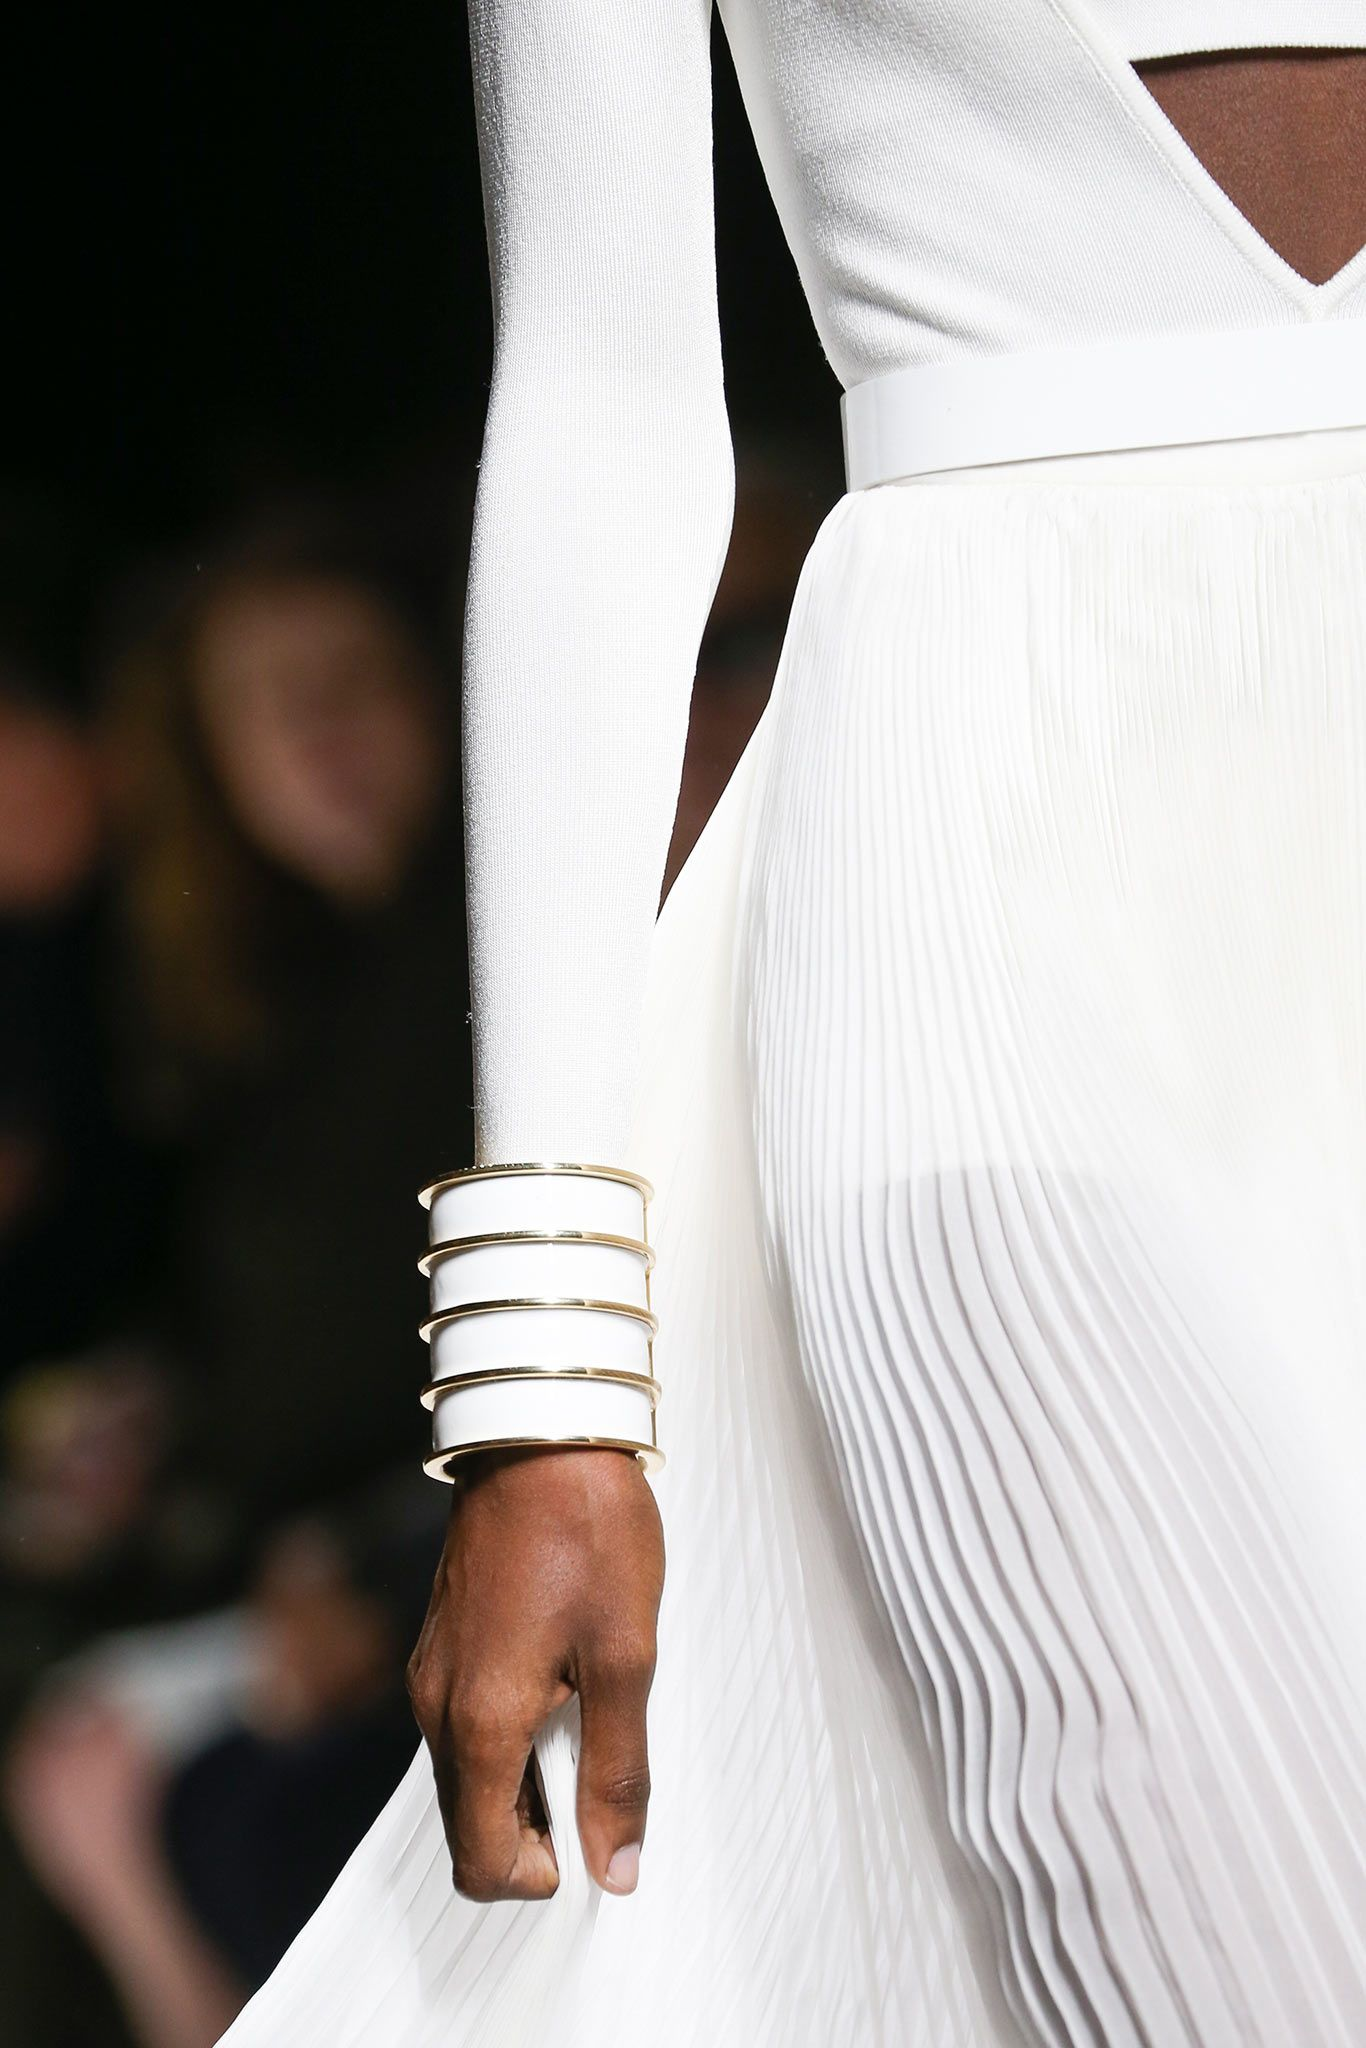 Balmain Spring 2015 Ready-to-Wear - Details - Gallery - Look 1 - Style.com #ranitasobanska #fashion #inspirations